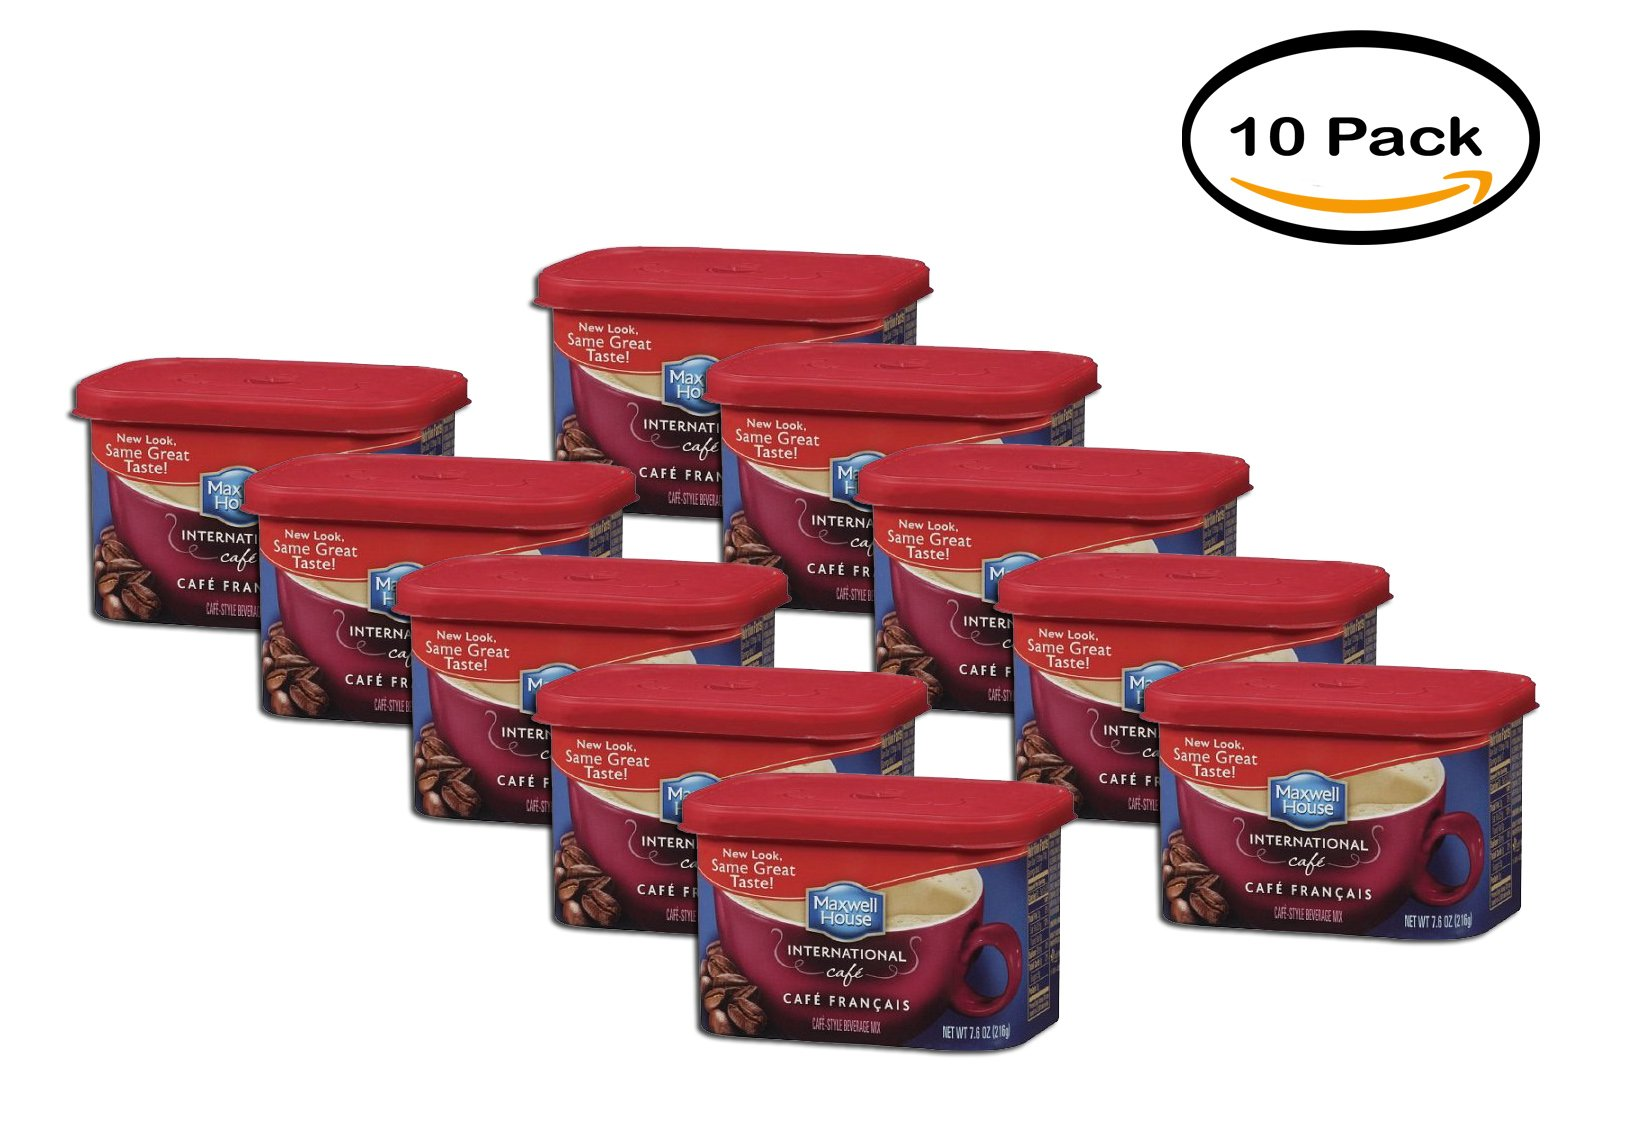 PACK OF 10 - Maxwell House International Cafe Francais Coffee Beverage Mix, 7.6 oz (215 g) by MAXWELL HOUSE